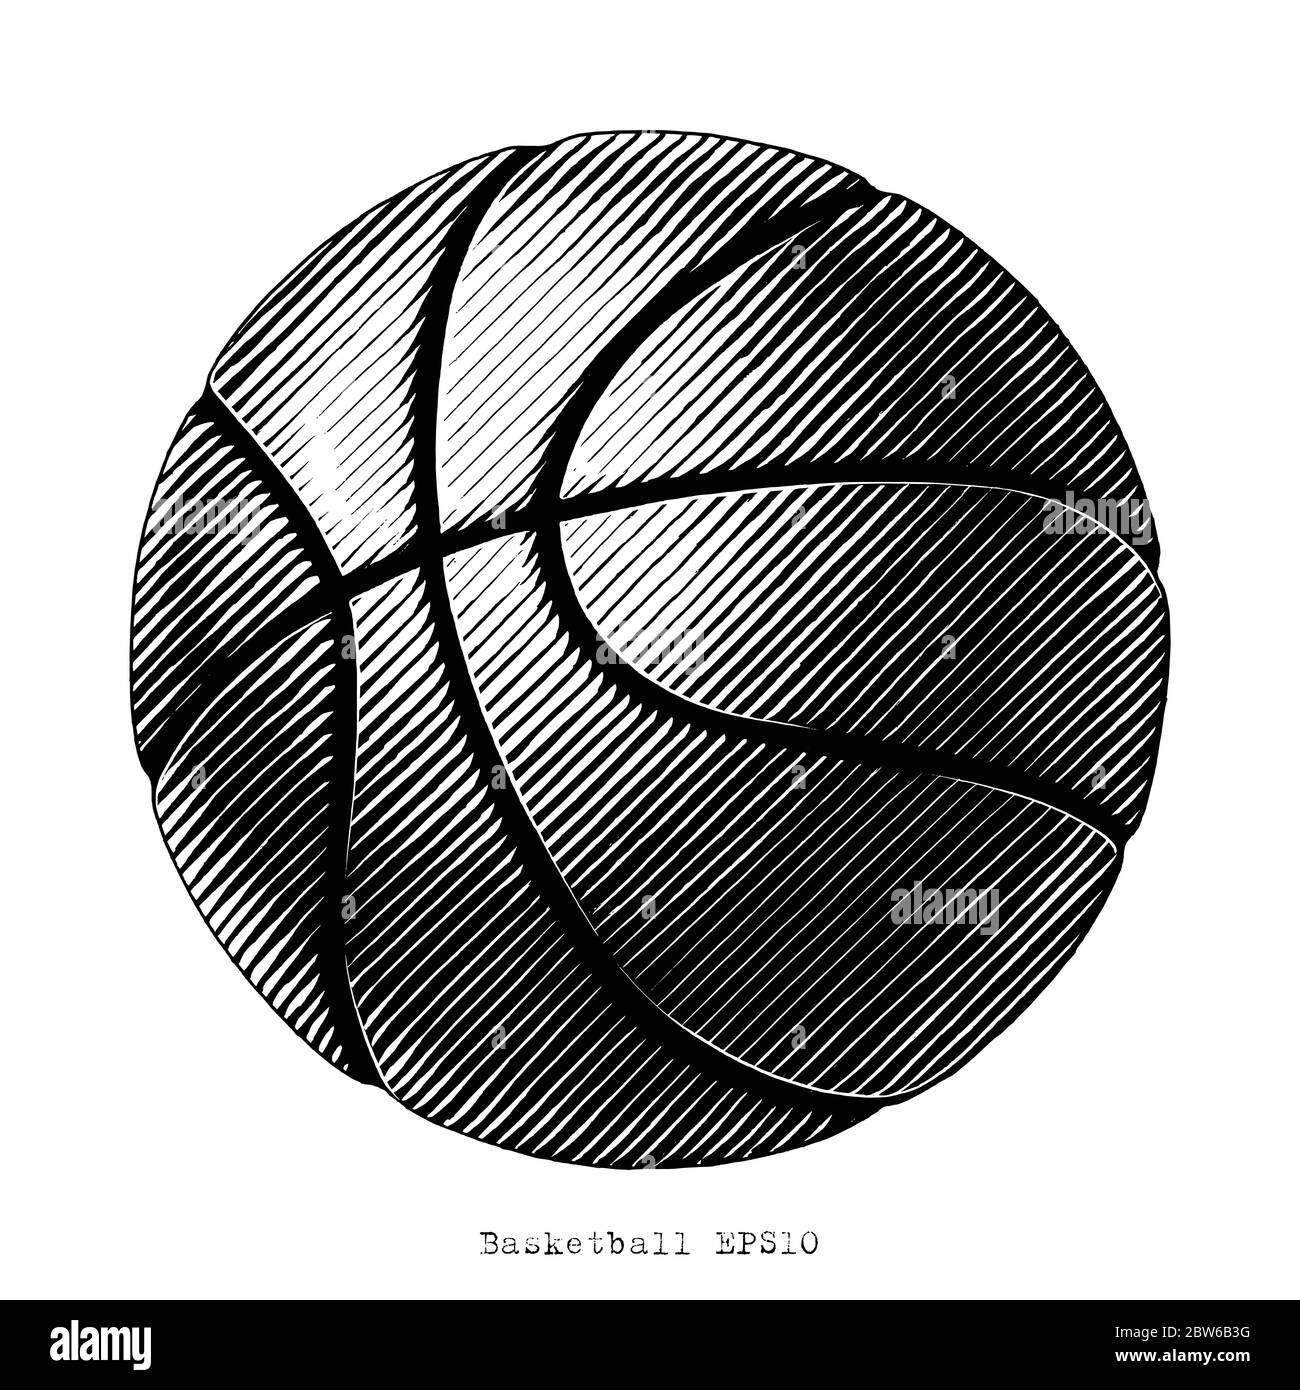 Basketball hand draw vinatge style black and white clip art isolated on white background Stock Vector